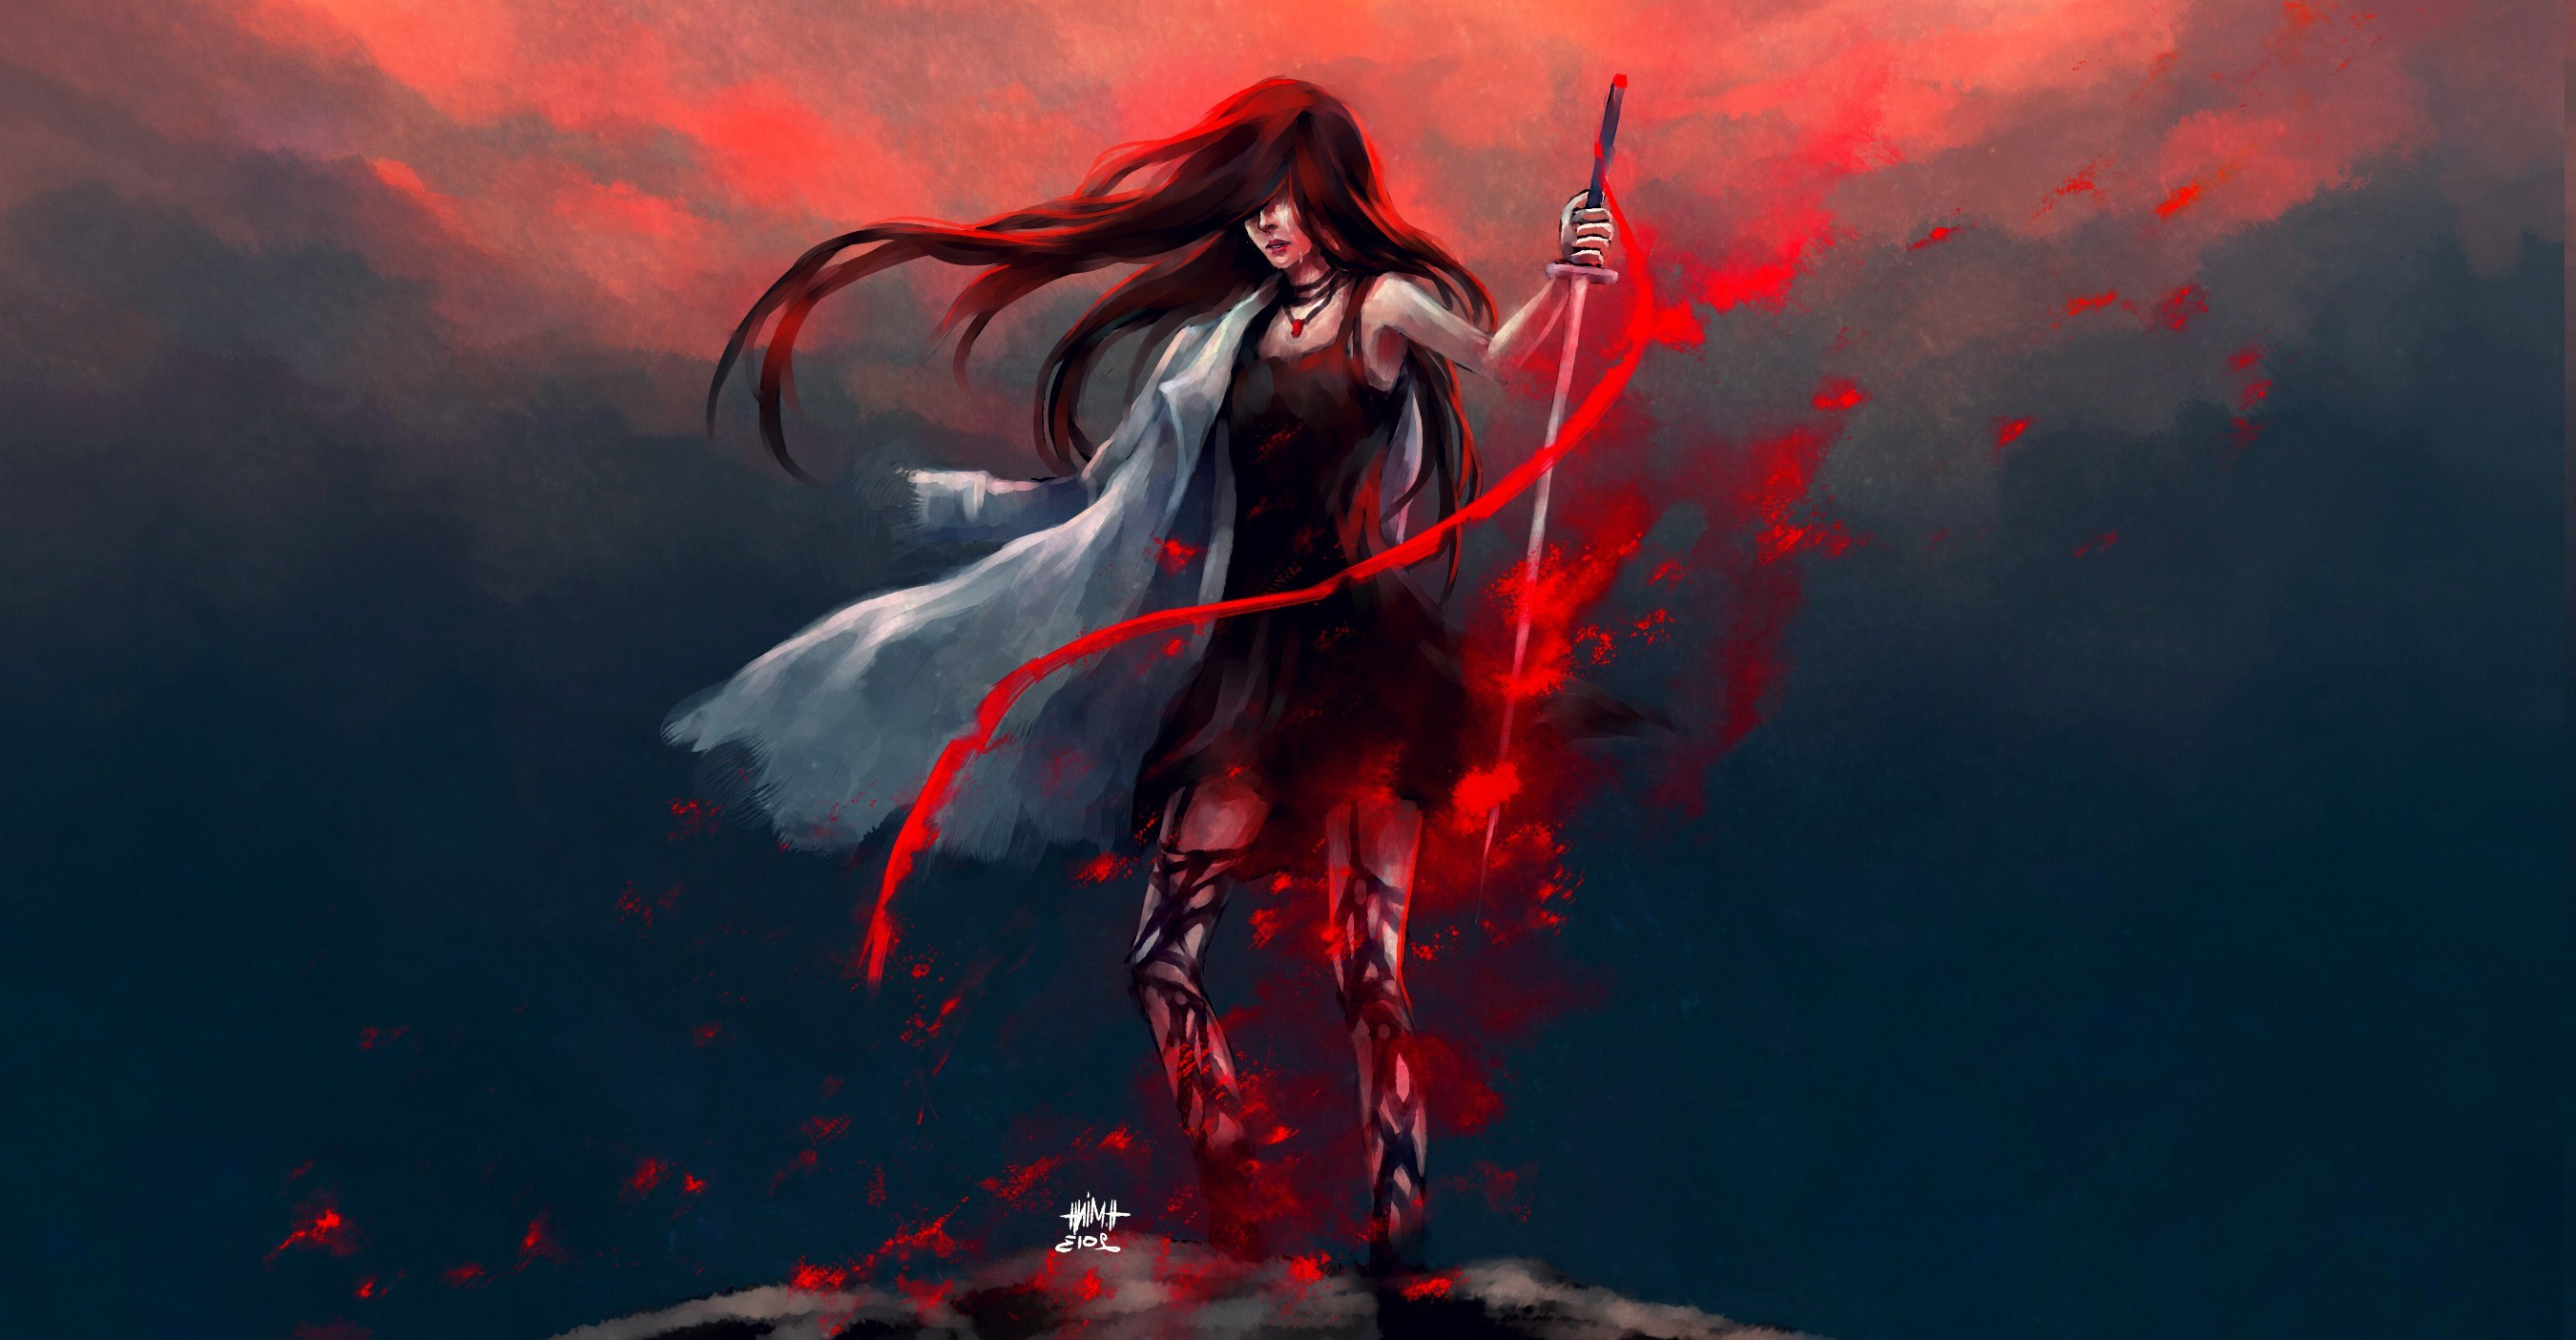 2700x1404 artwork, Fantasy Art, Anime, Warrior, Redhead, Blood, NanFe, Original